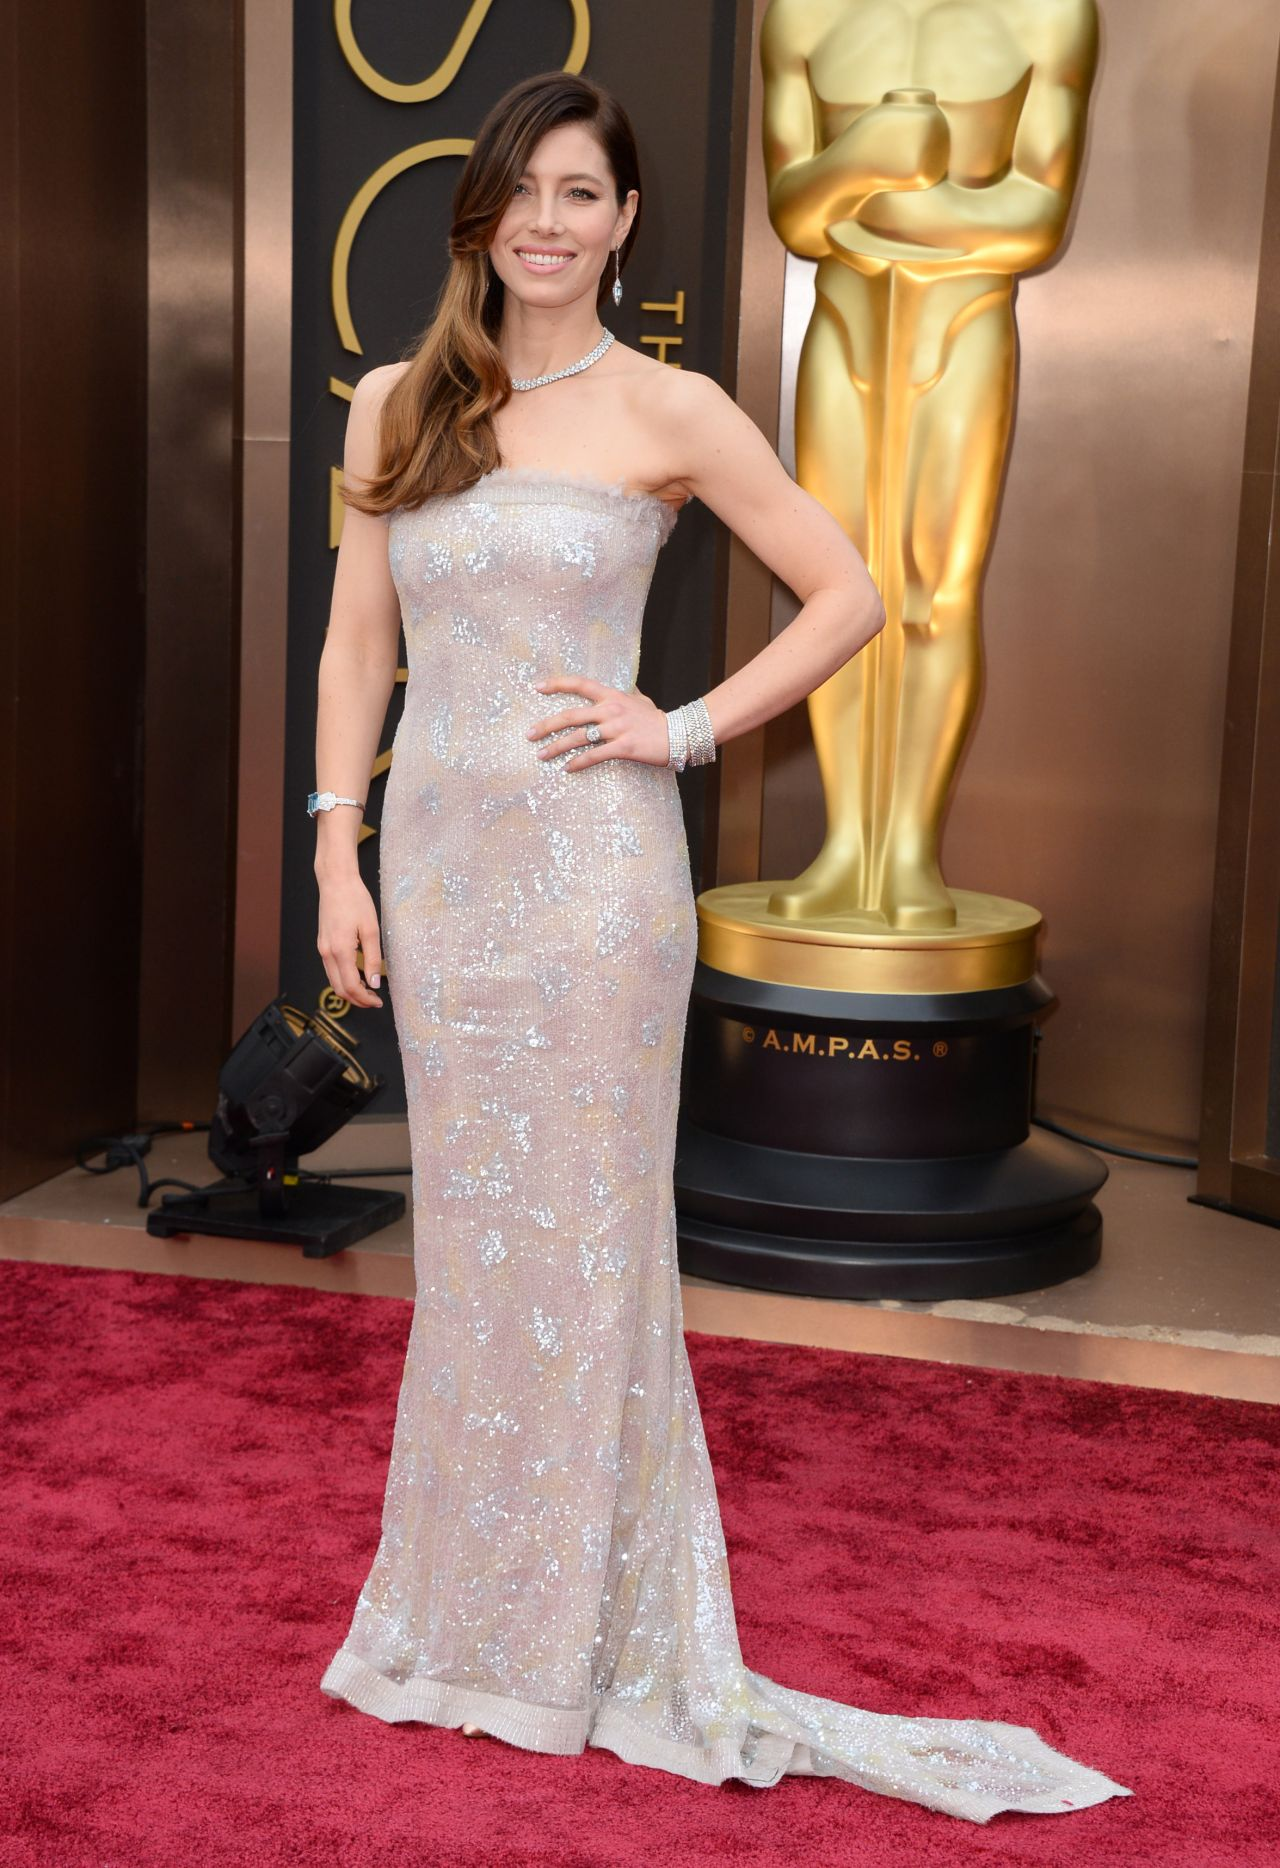 Jessica Biel Wearing Chanel Couture Dress - 2014 Oscars